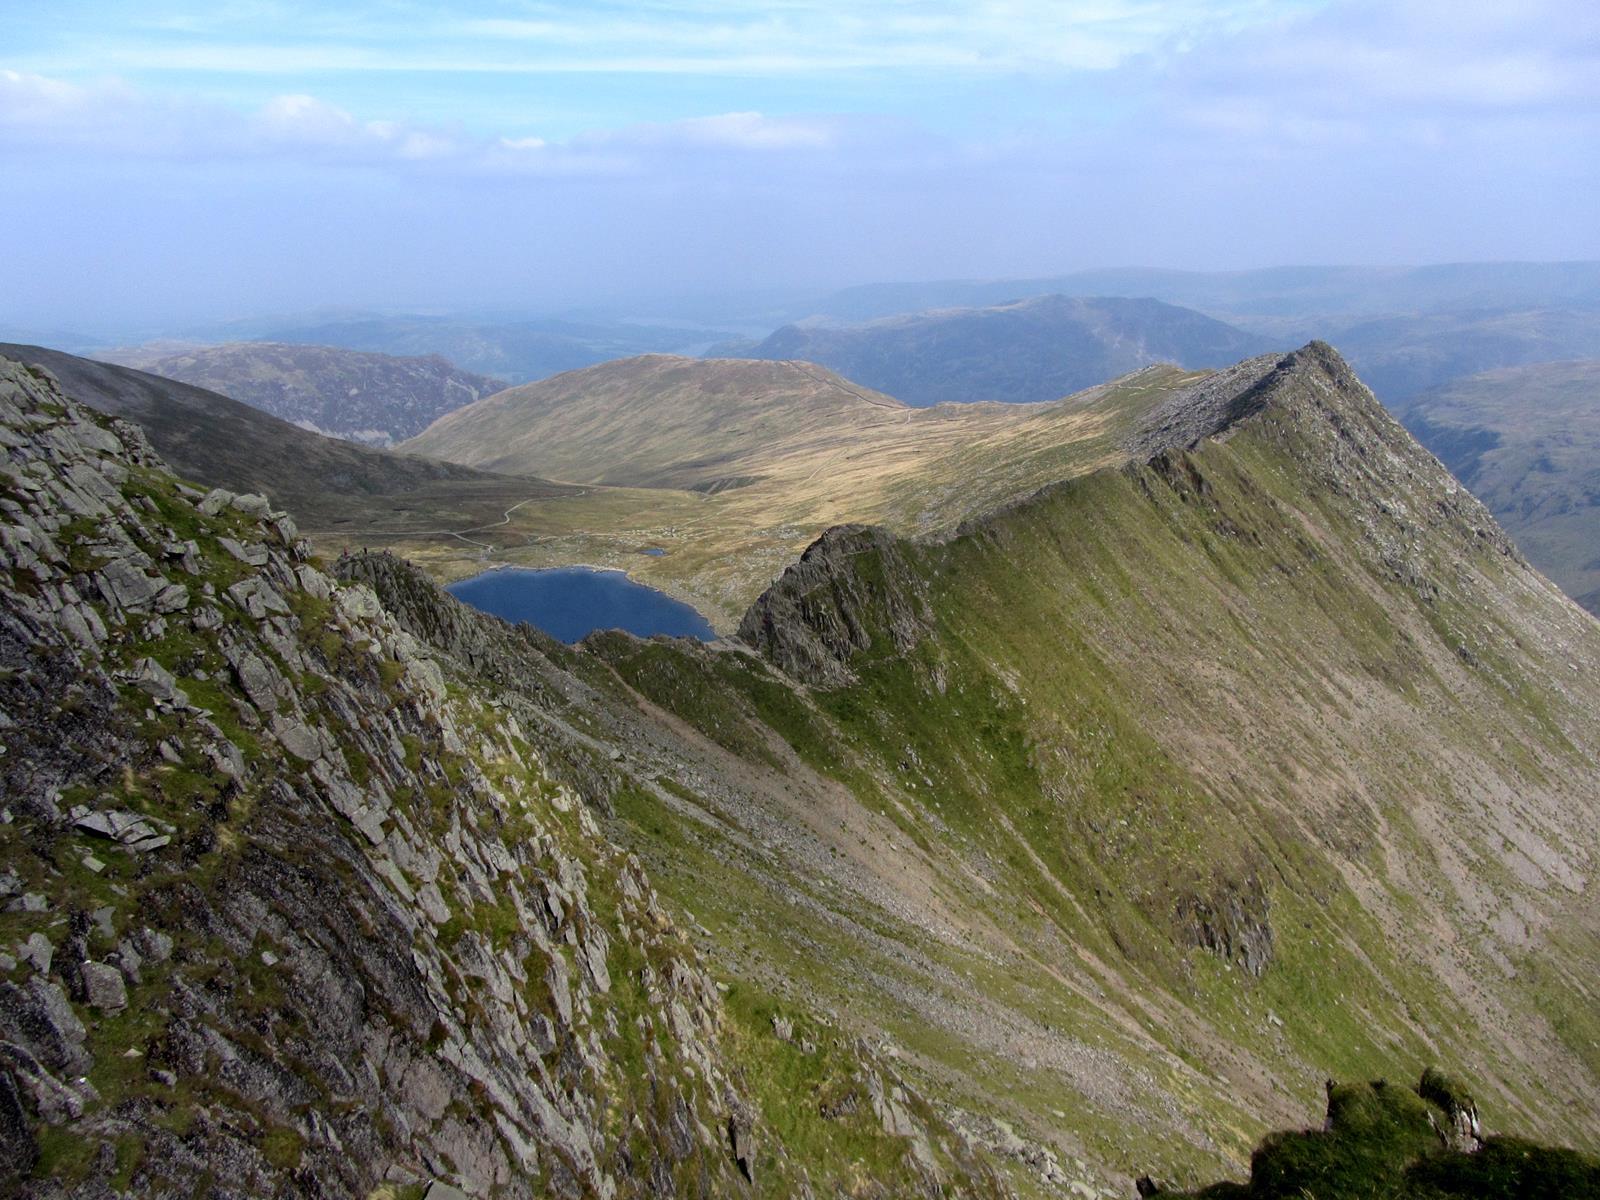 Image for article This month's walk: Helvellyn via Striding Edge and Swirral Edge